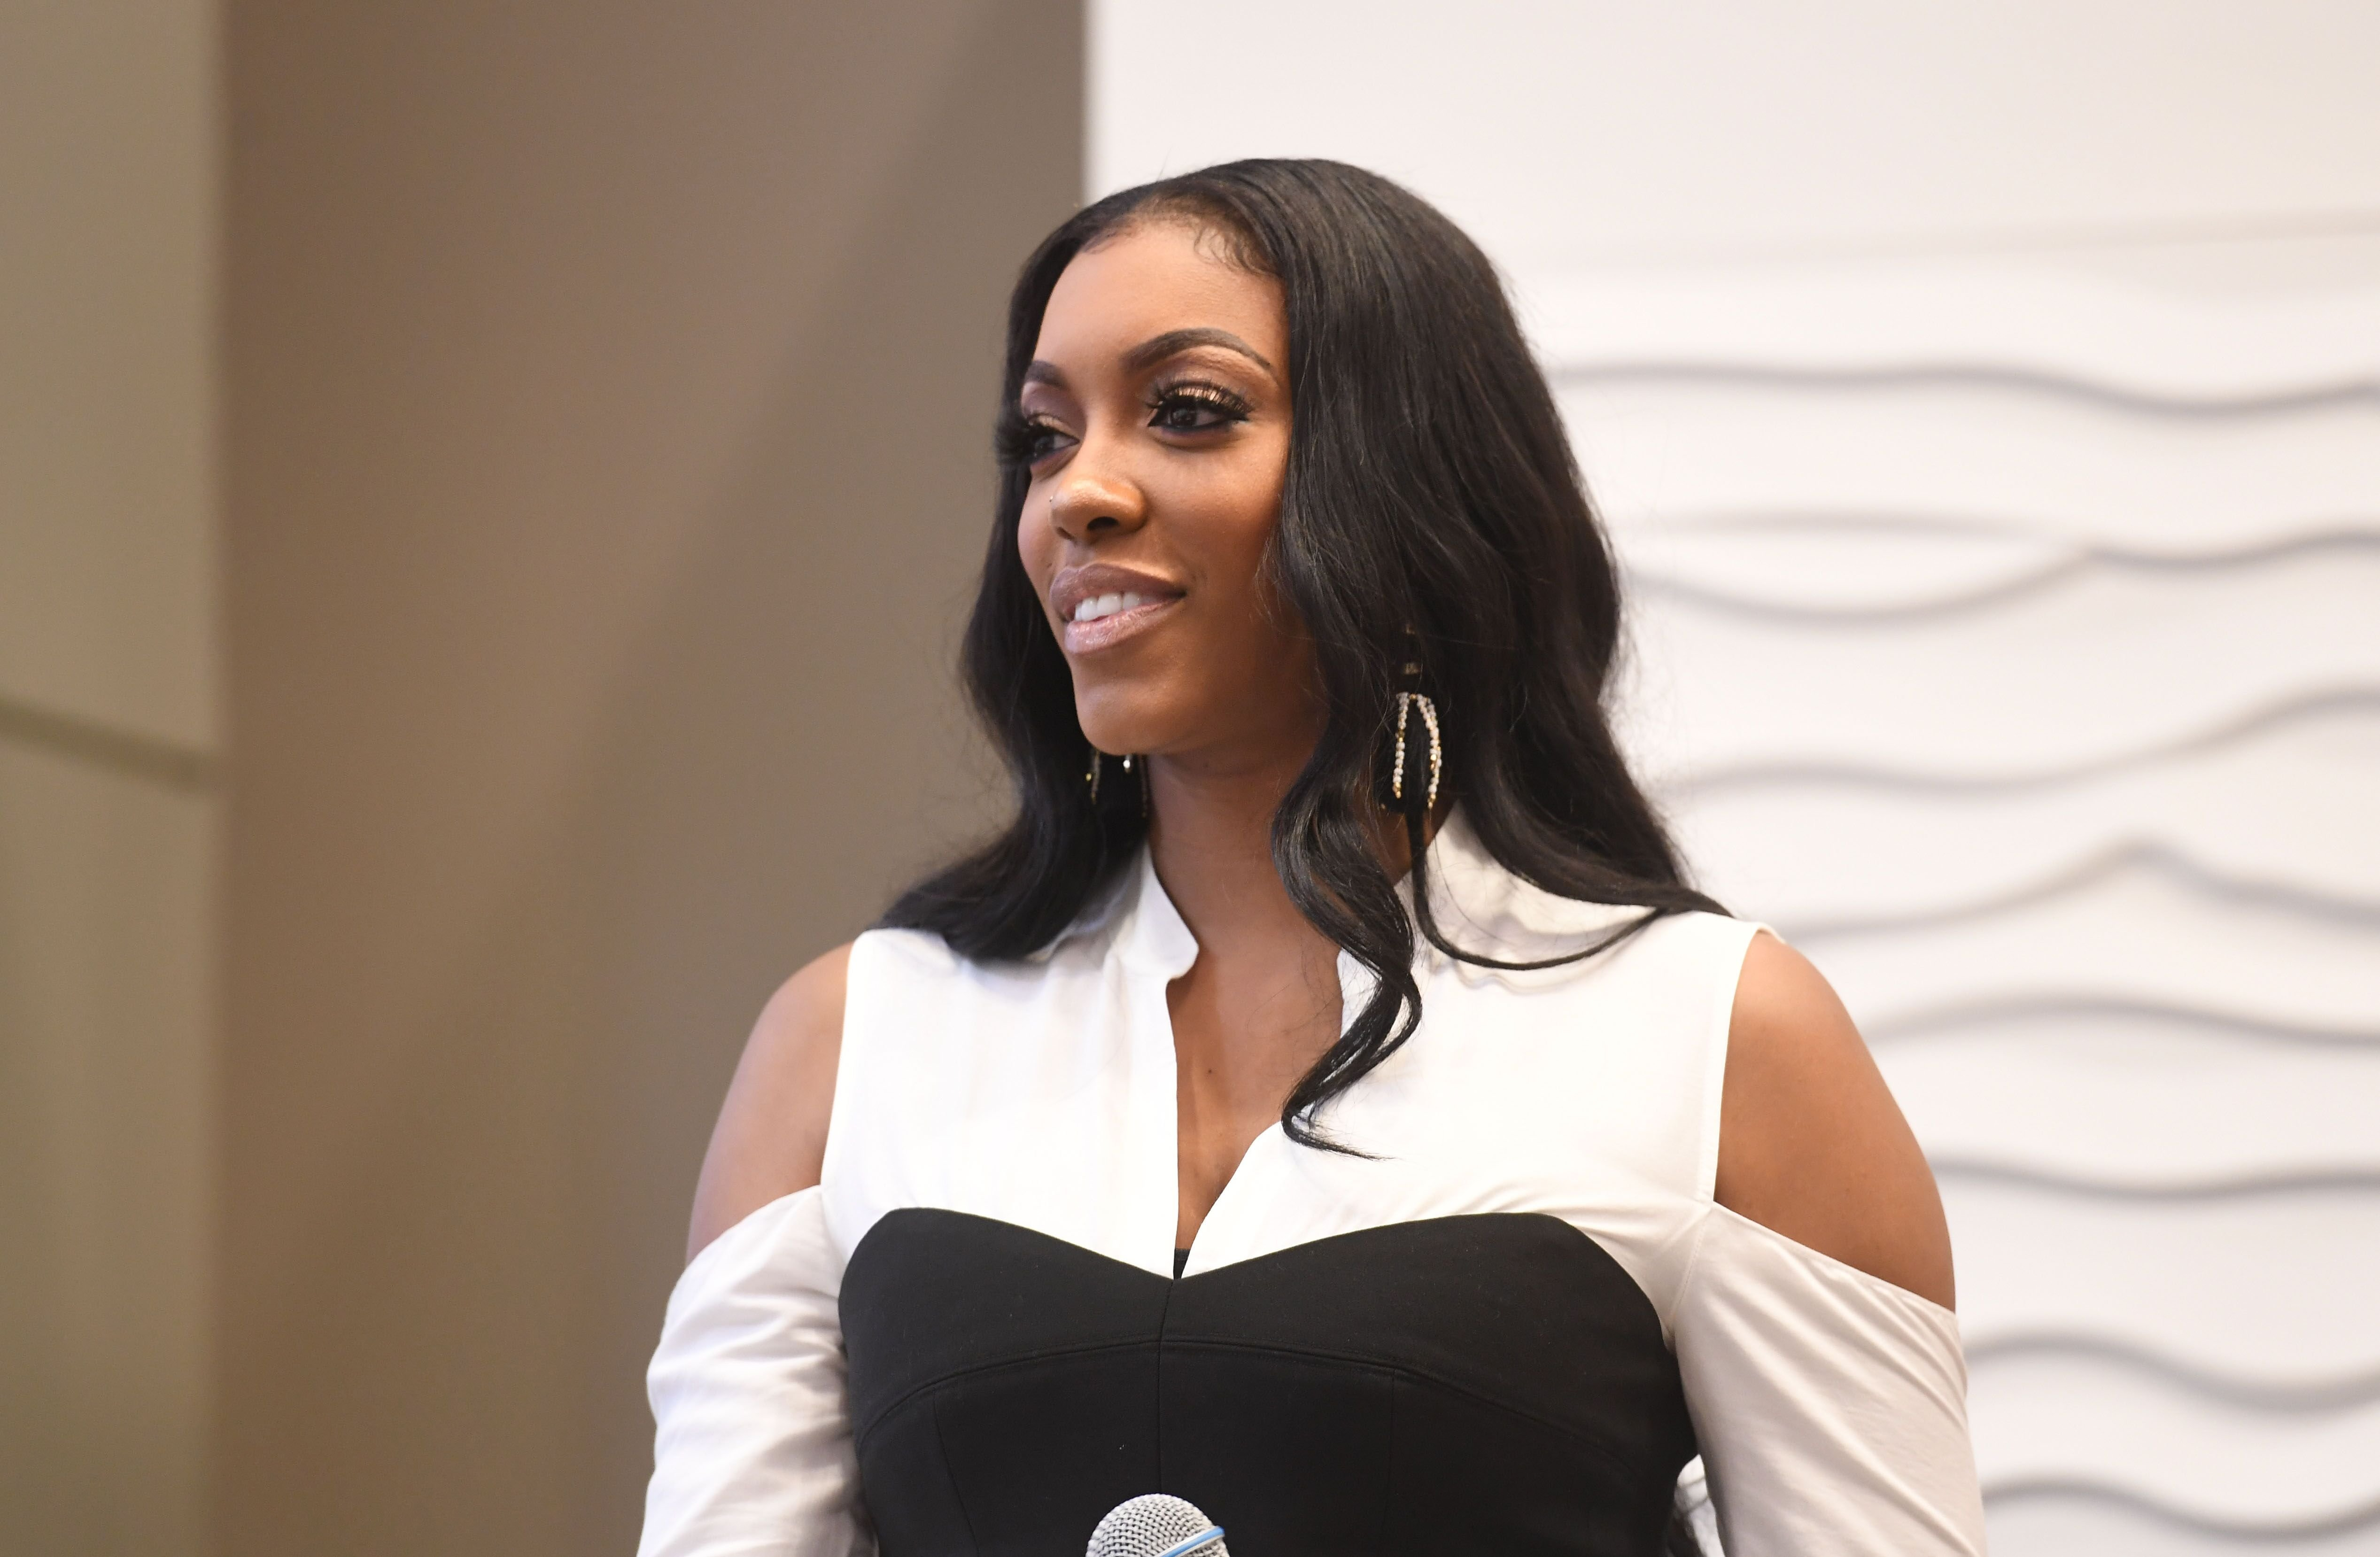 Porsha Williams poses during the Hosea's Heroes Awards in 2018. | Source: Getty Images